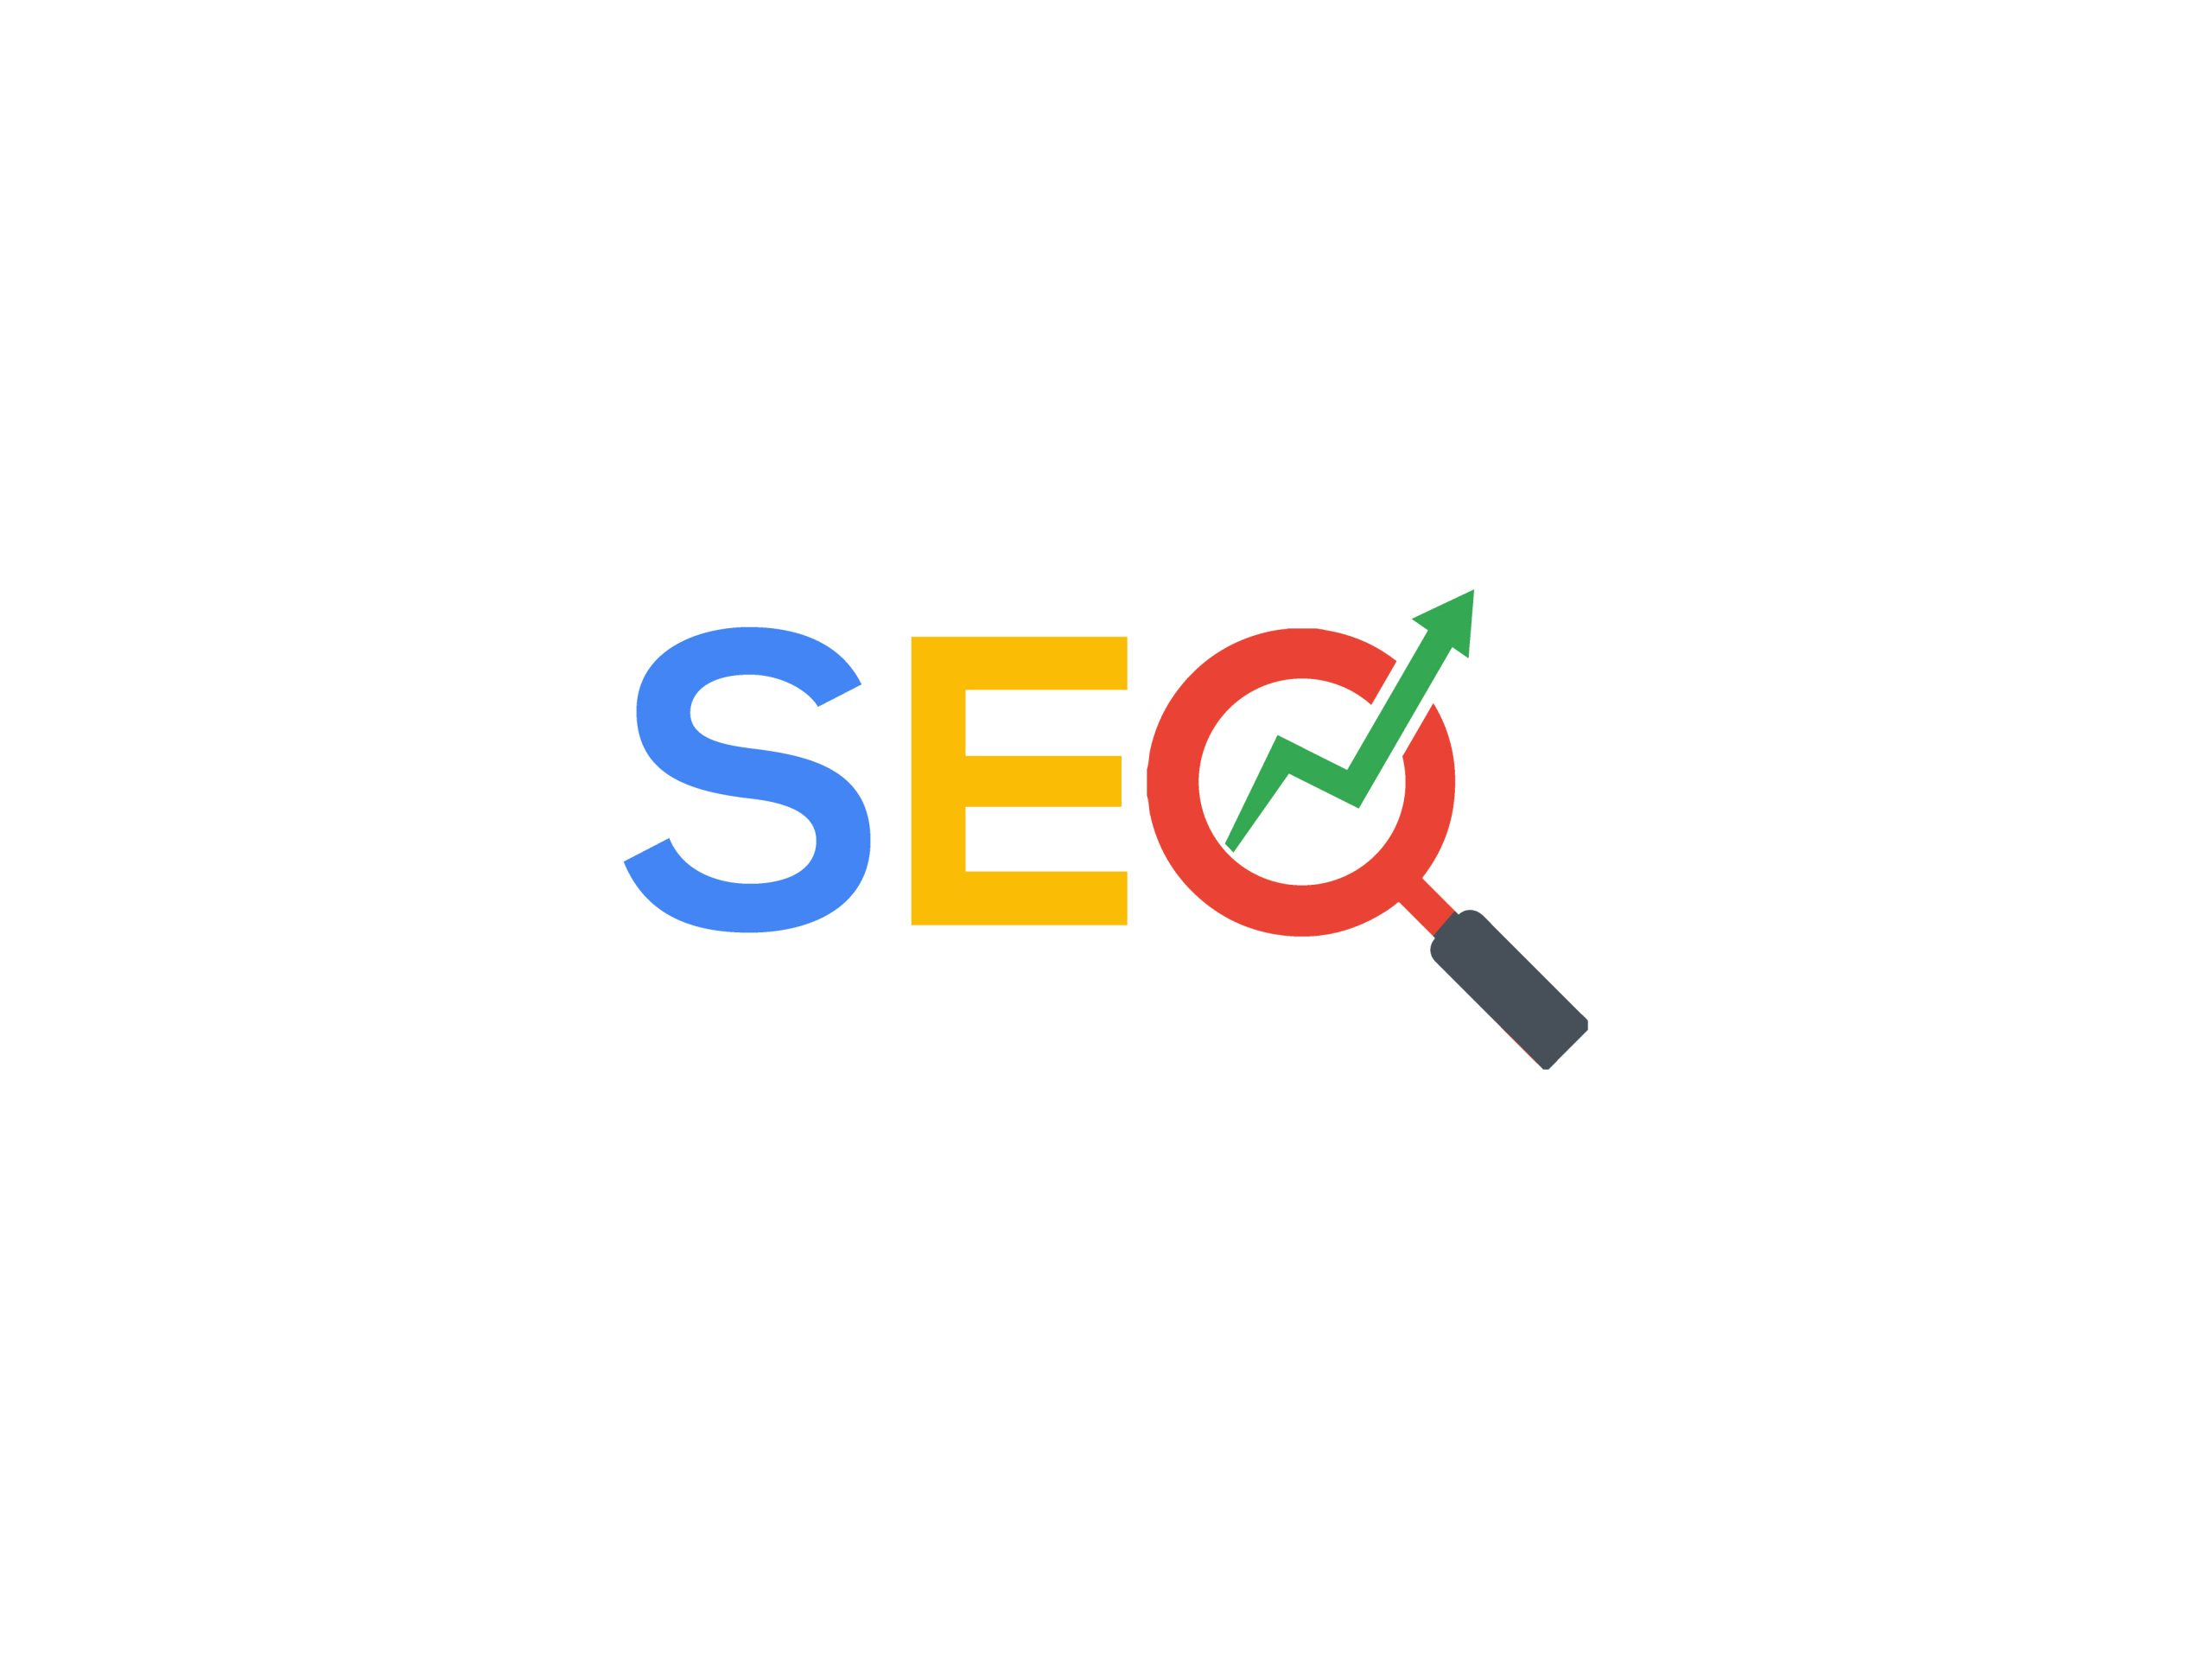 URL analysis for effective SERP in modern SEO and SEM